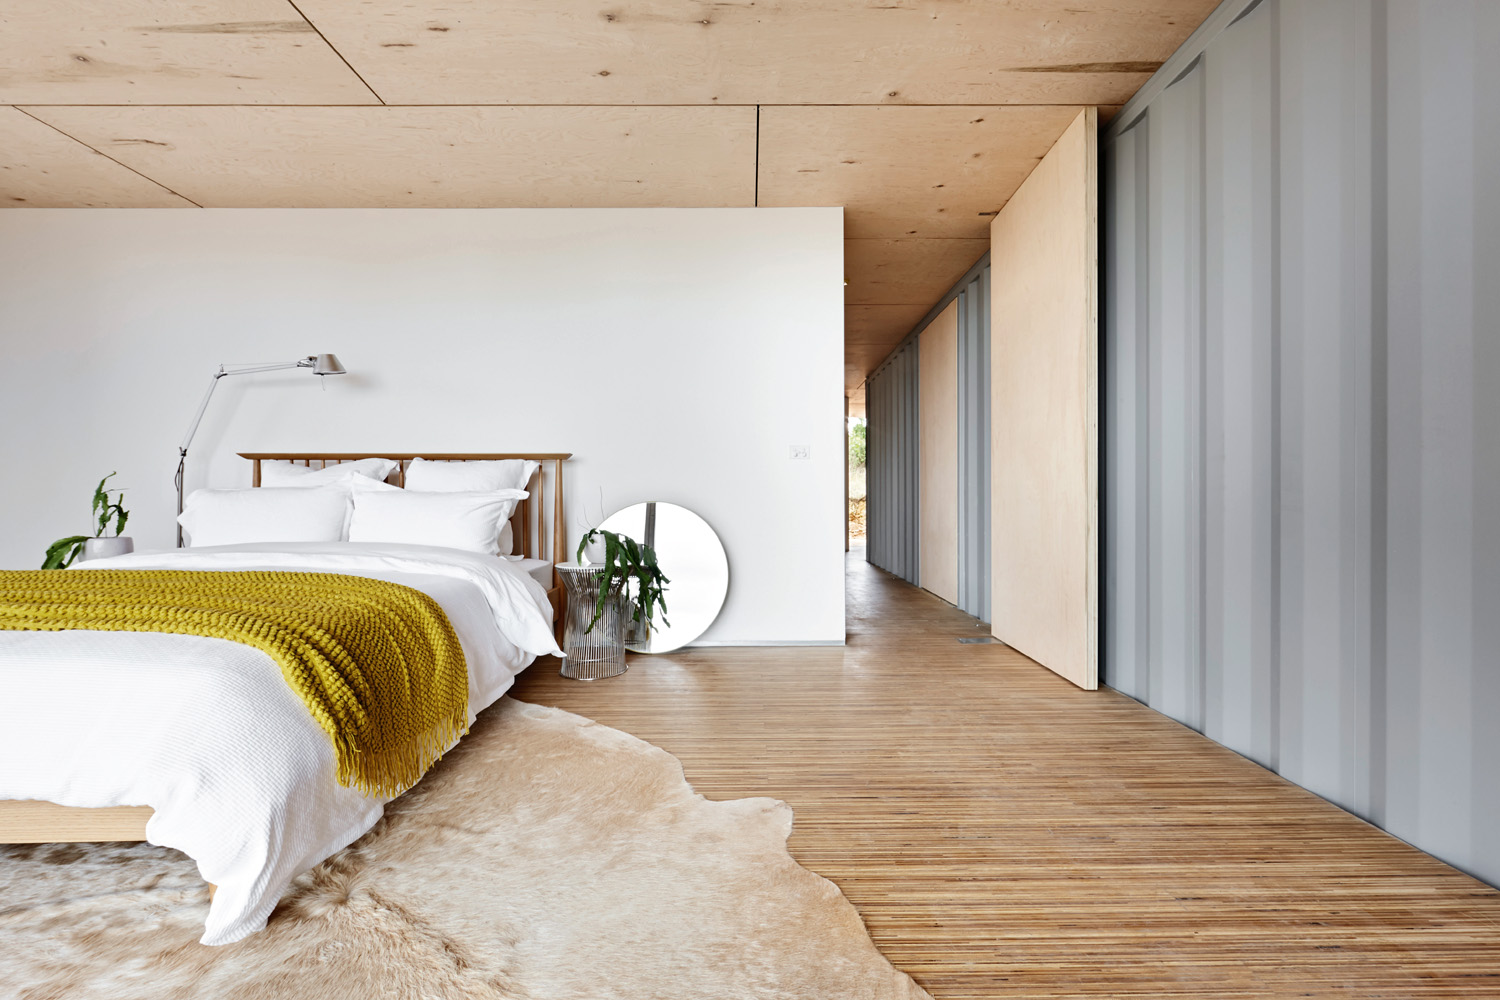 With so much warmth created by the floorboards, simple is best in the bedroom